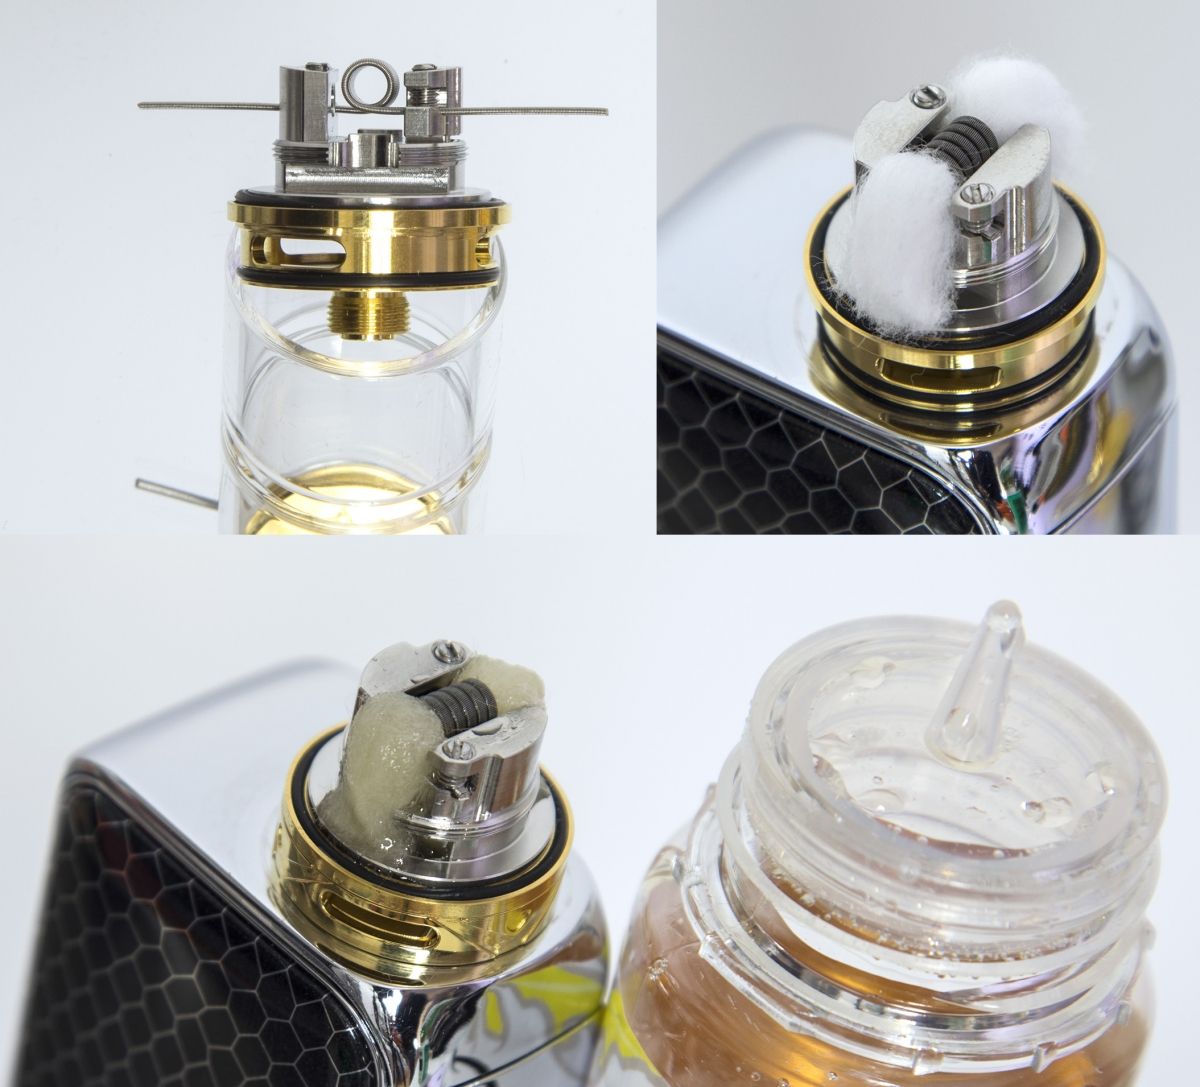 Oumier Wasp Nano RTA wicking